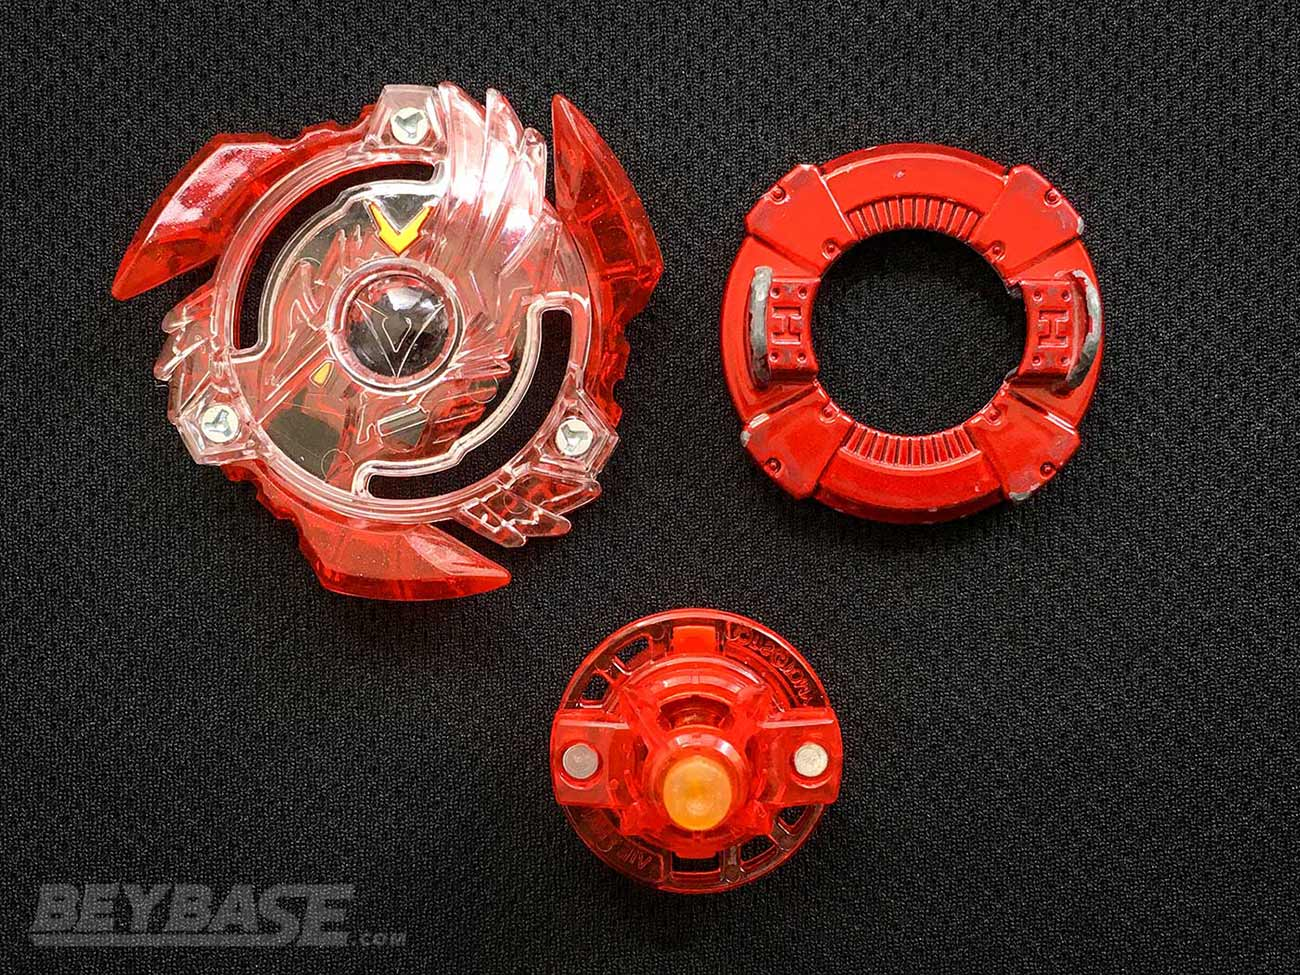 beyblade burst classic attack combo parts: victory valkyrie layer, heavy disk, and xtreme dash driver